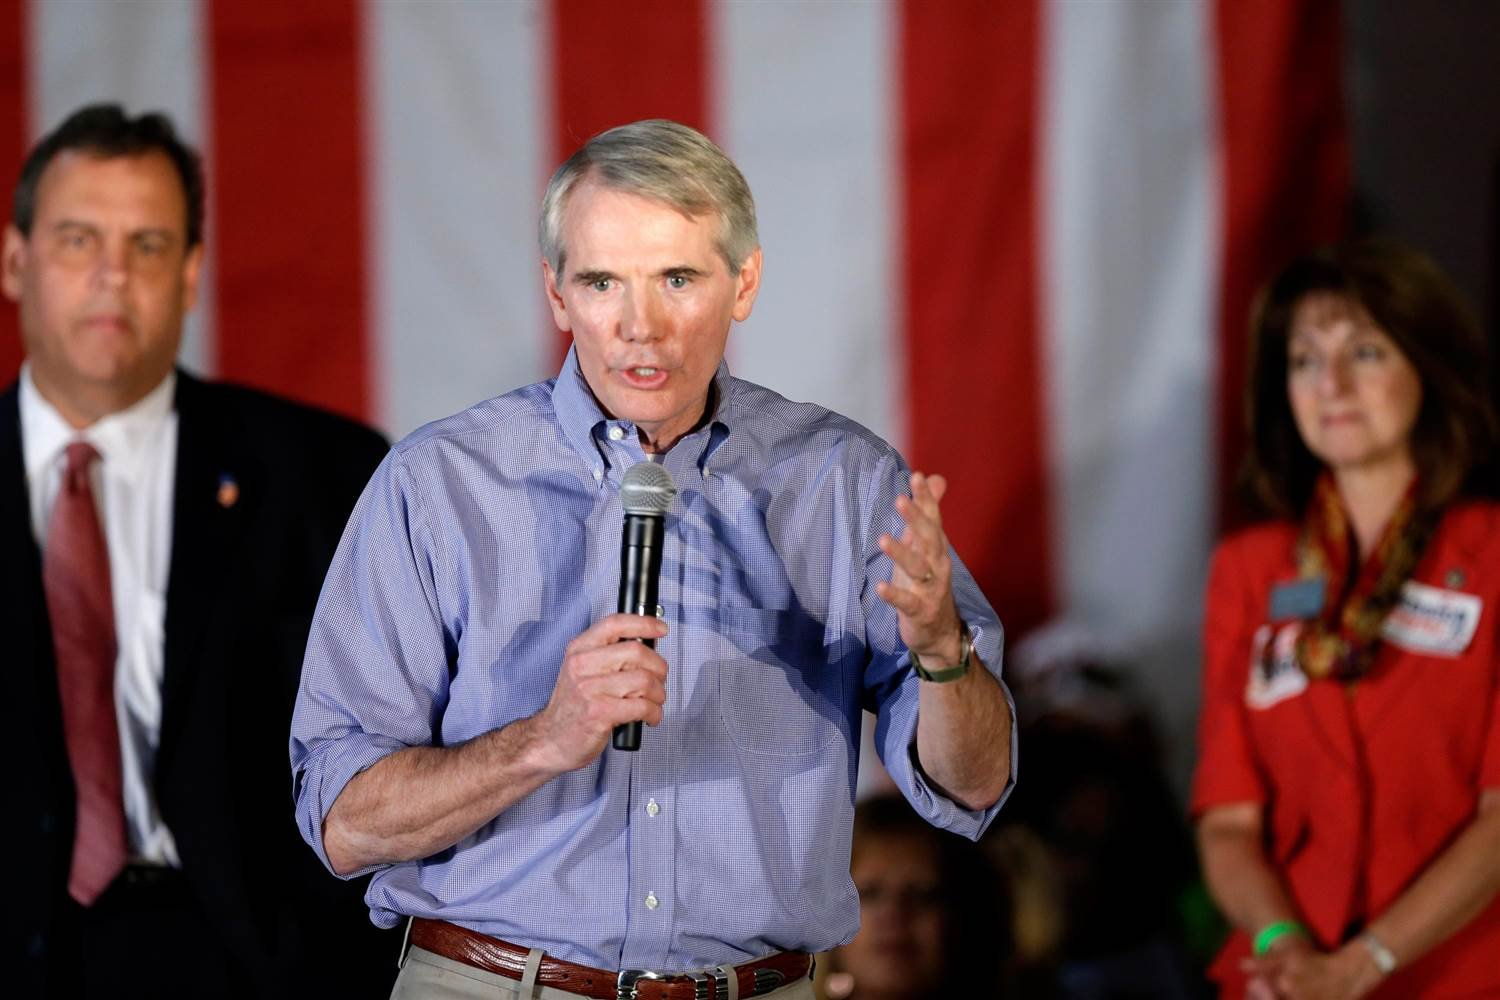 Sen. Rob Portman, R-Ohio, speaks at a GOP Get Out the Vote rally in Independence, Ohio Monday, Sept. 29, 2014. - AP Photo/Mark Duncan